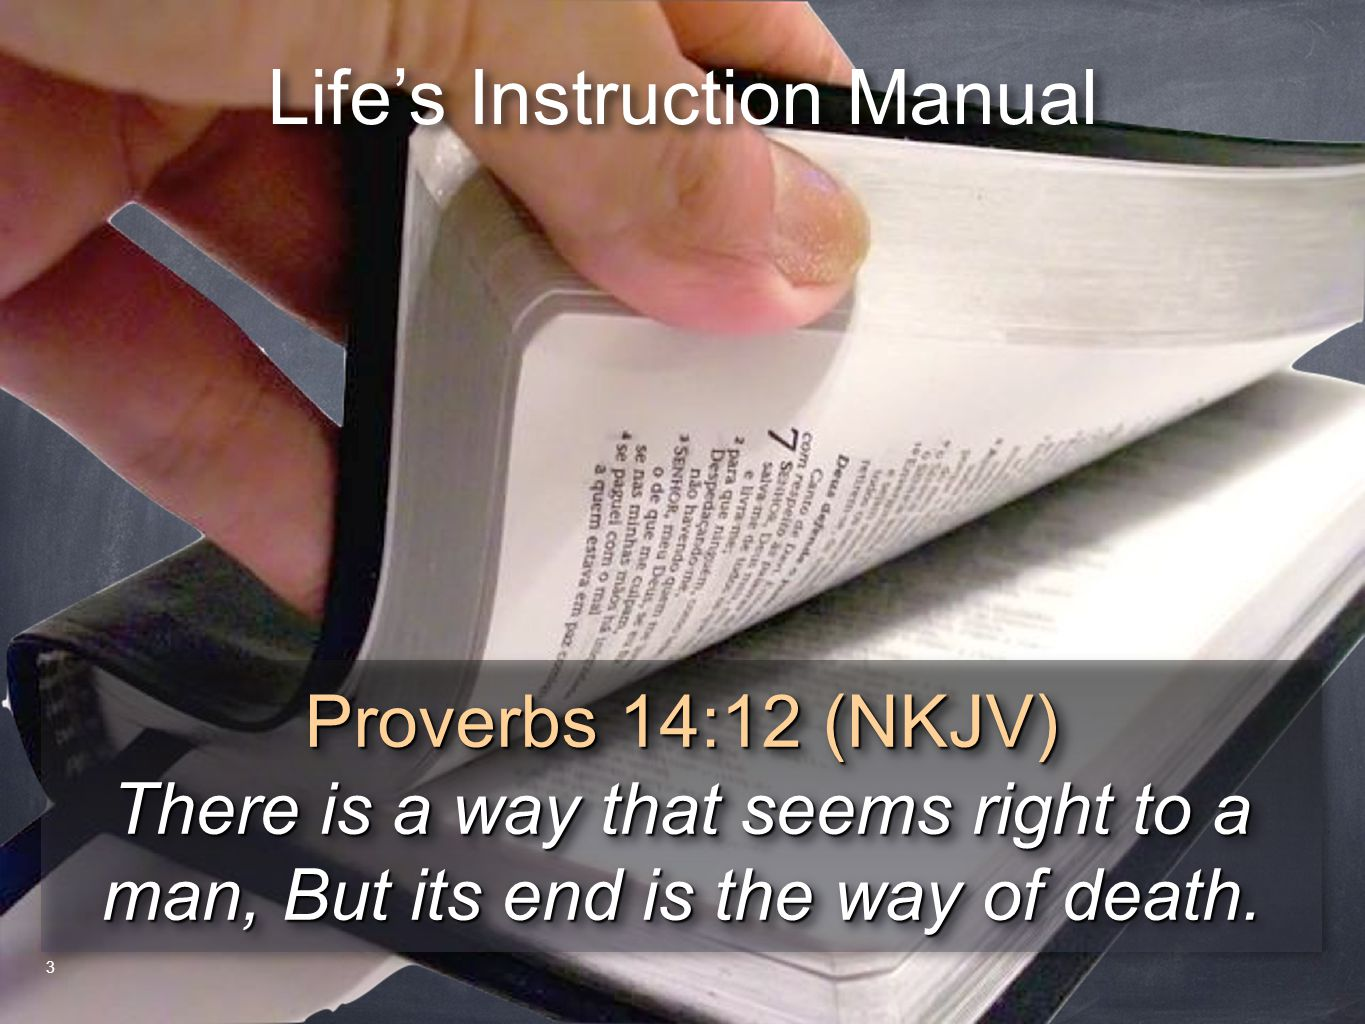 Life's Instruction Manual Proverbs 14:12 (NKJV) There is a way that seems right to a man, But its end is the way of death. Proverbs 14:12 (NKJV) There